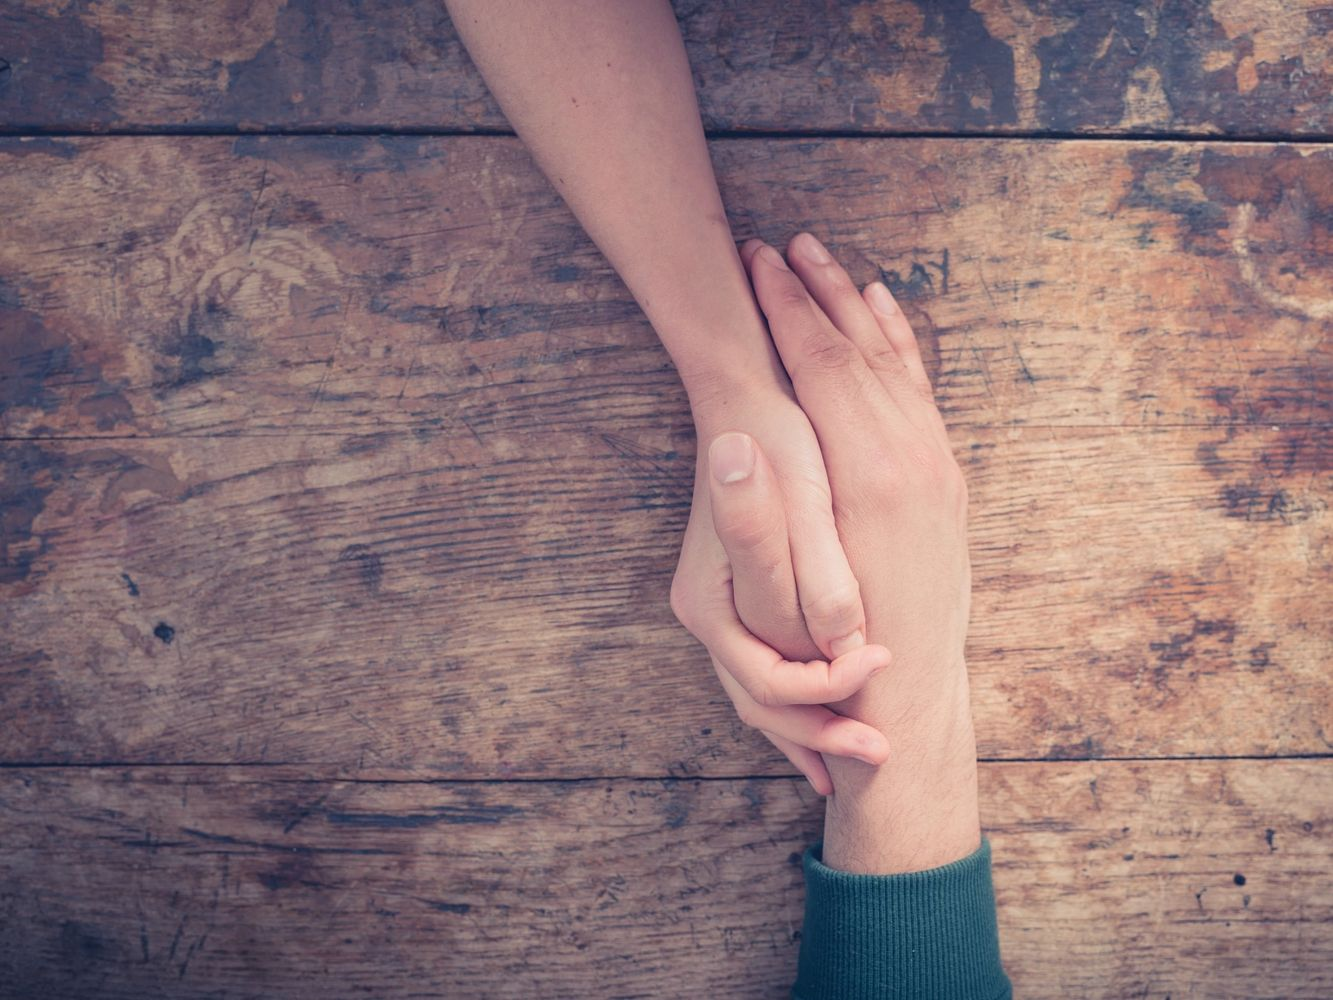 Anxiety & Trauma Clinic of Nova Scotia holding hands picture